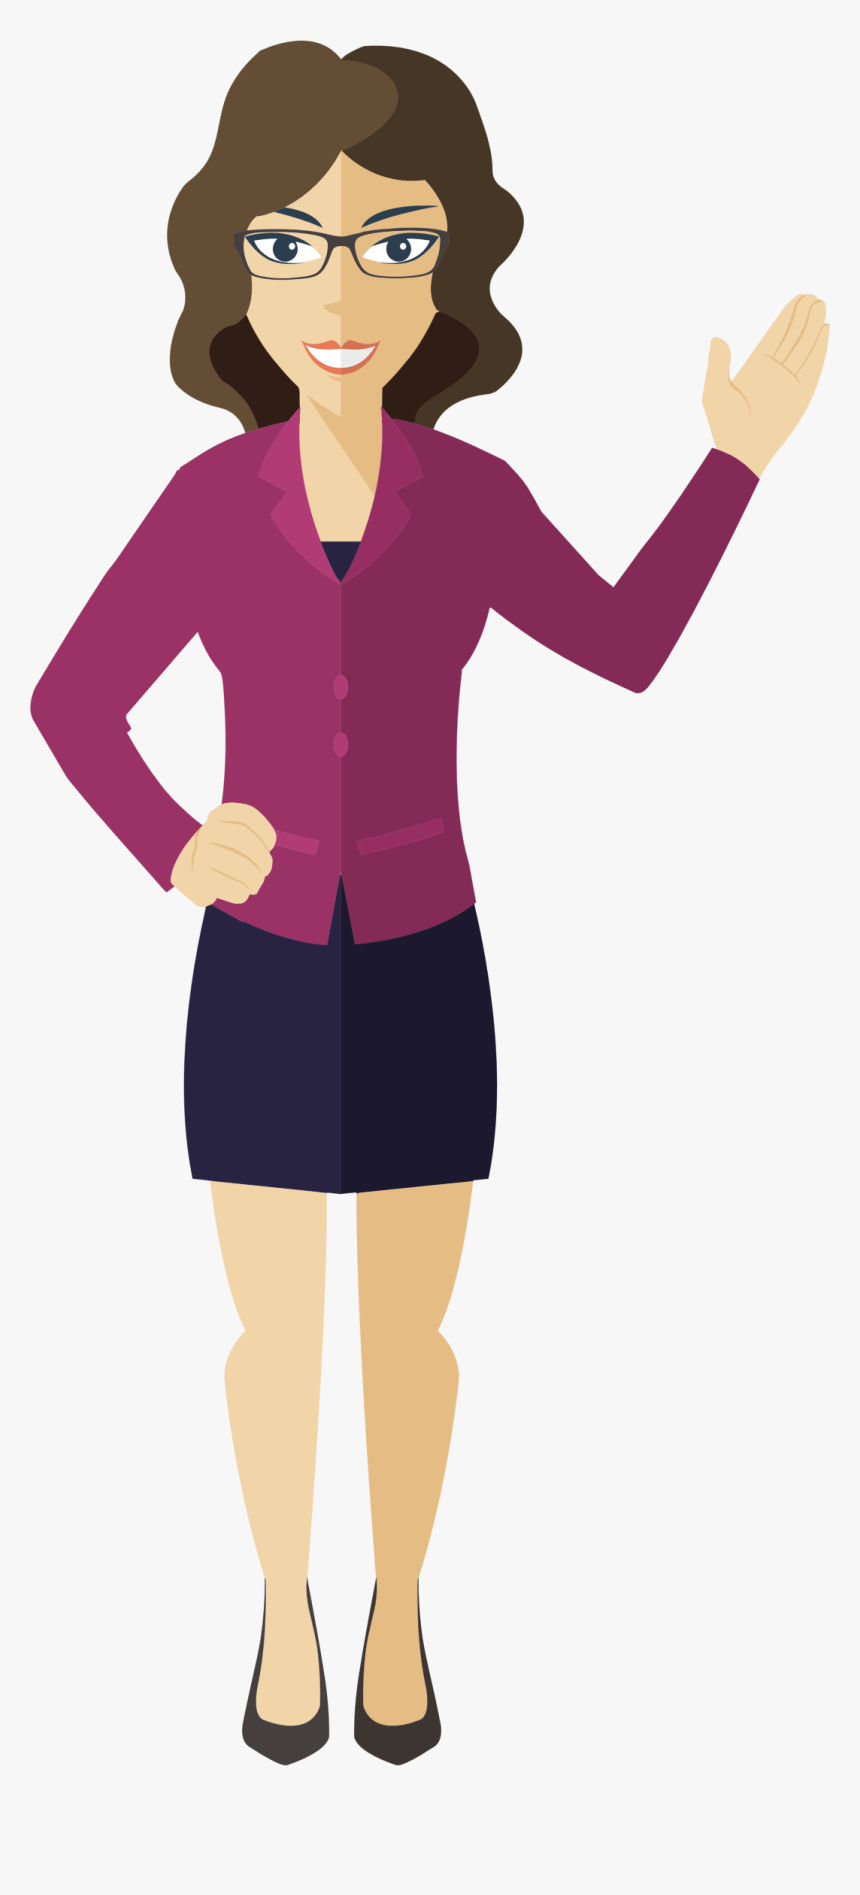 Transparent Woman Clipart, HD Png Download, Free Download